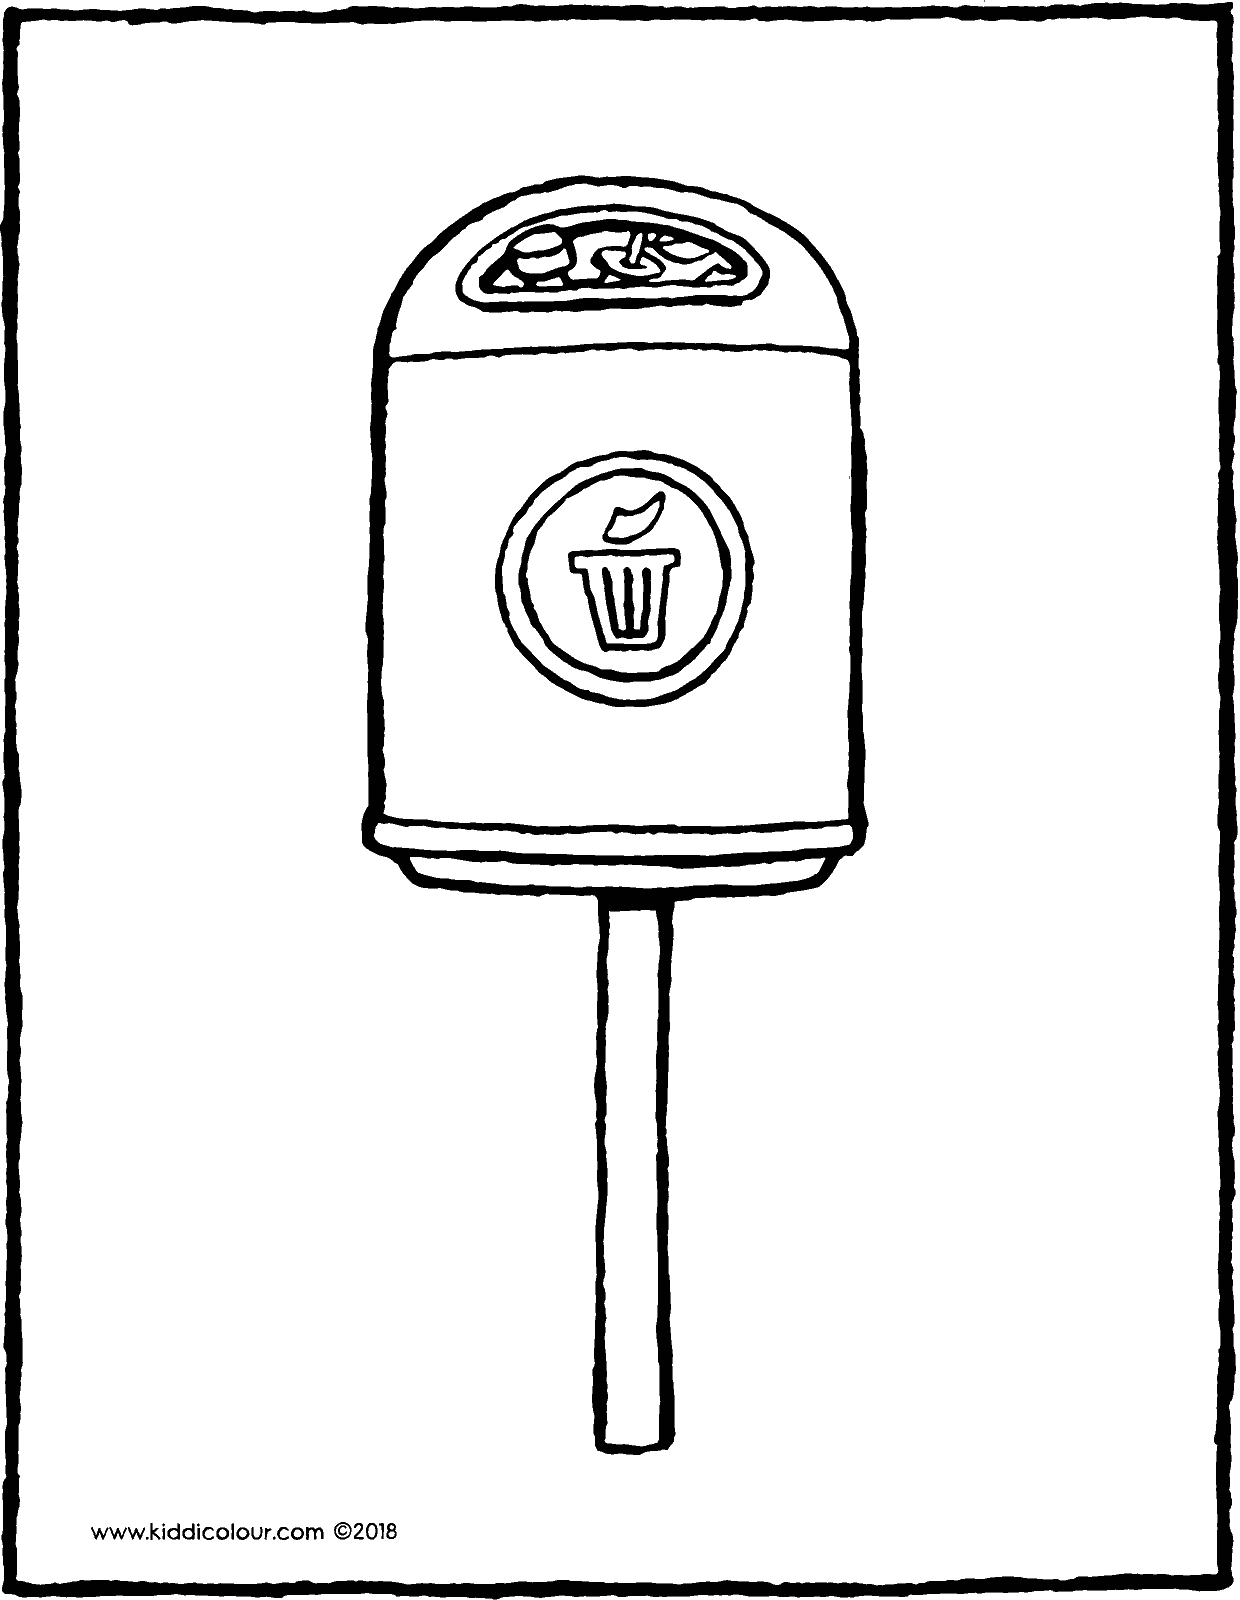 rubbish bin colouring page drawing picture 01V